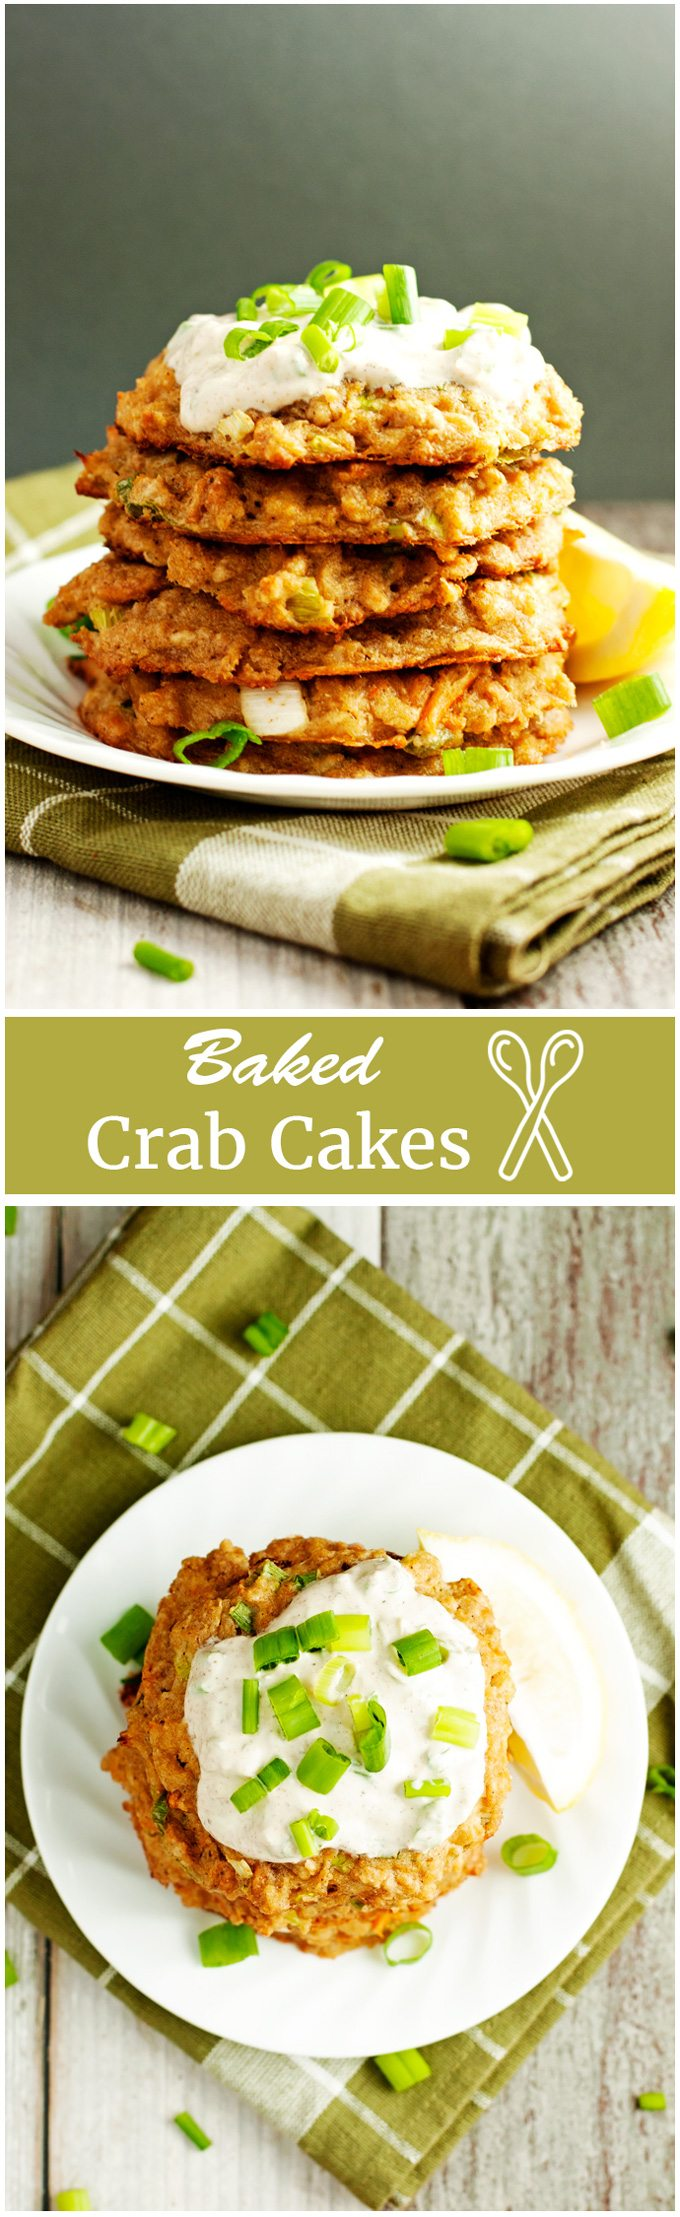 Baked crab cakes, stacked and served.